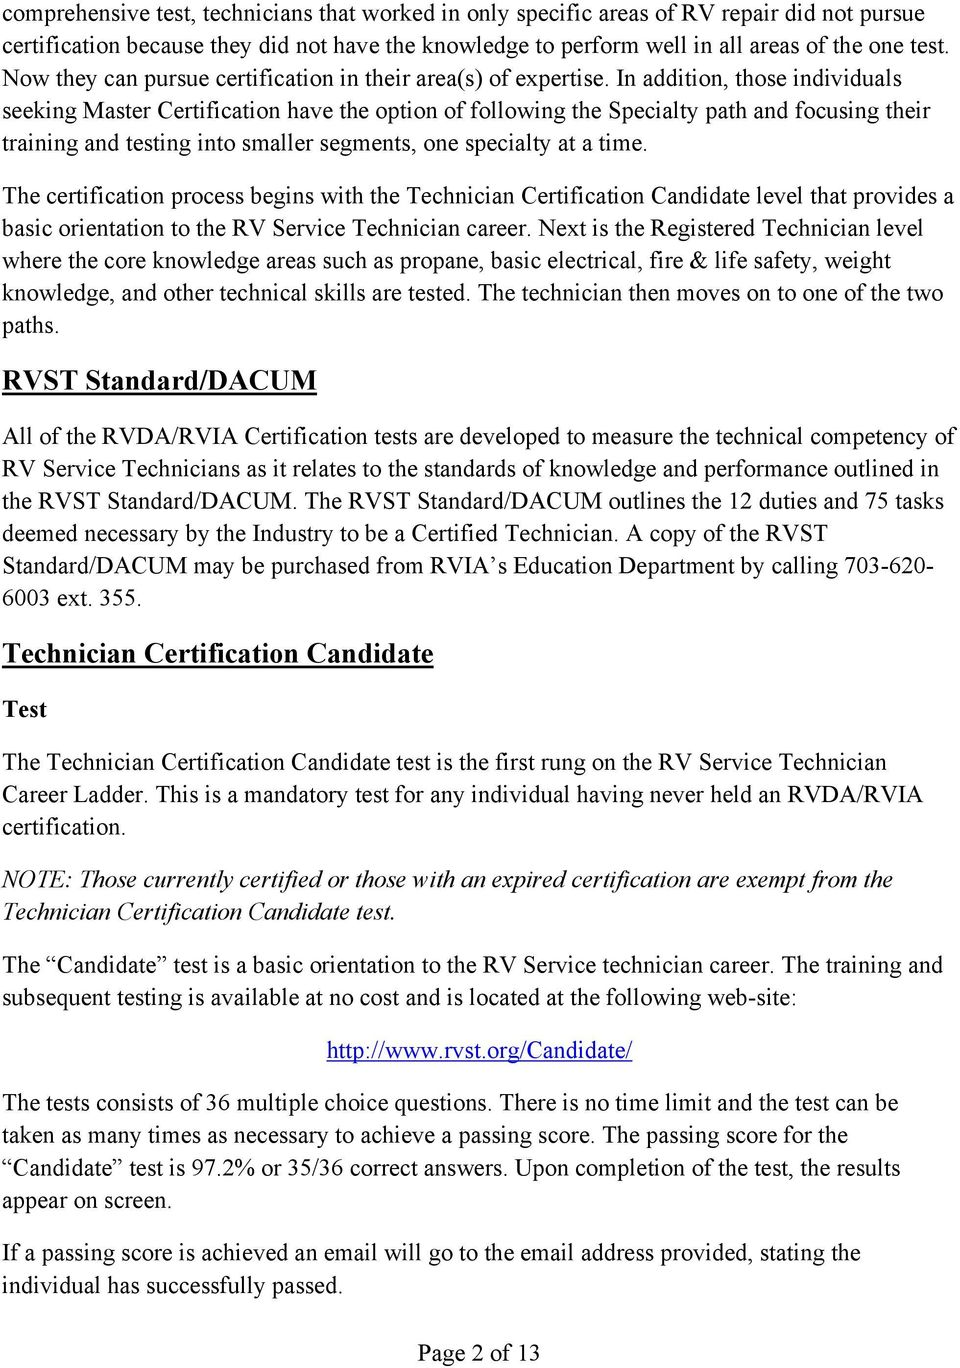 Rvdarvia Rv Service Technician Certification Program Certification